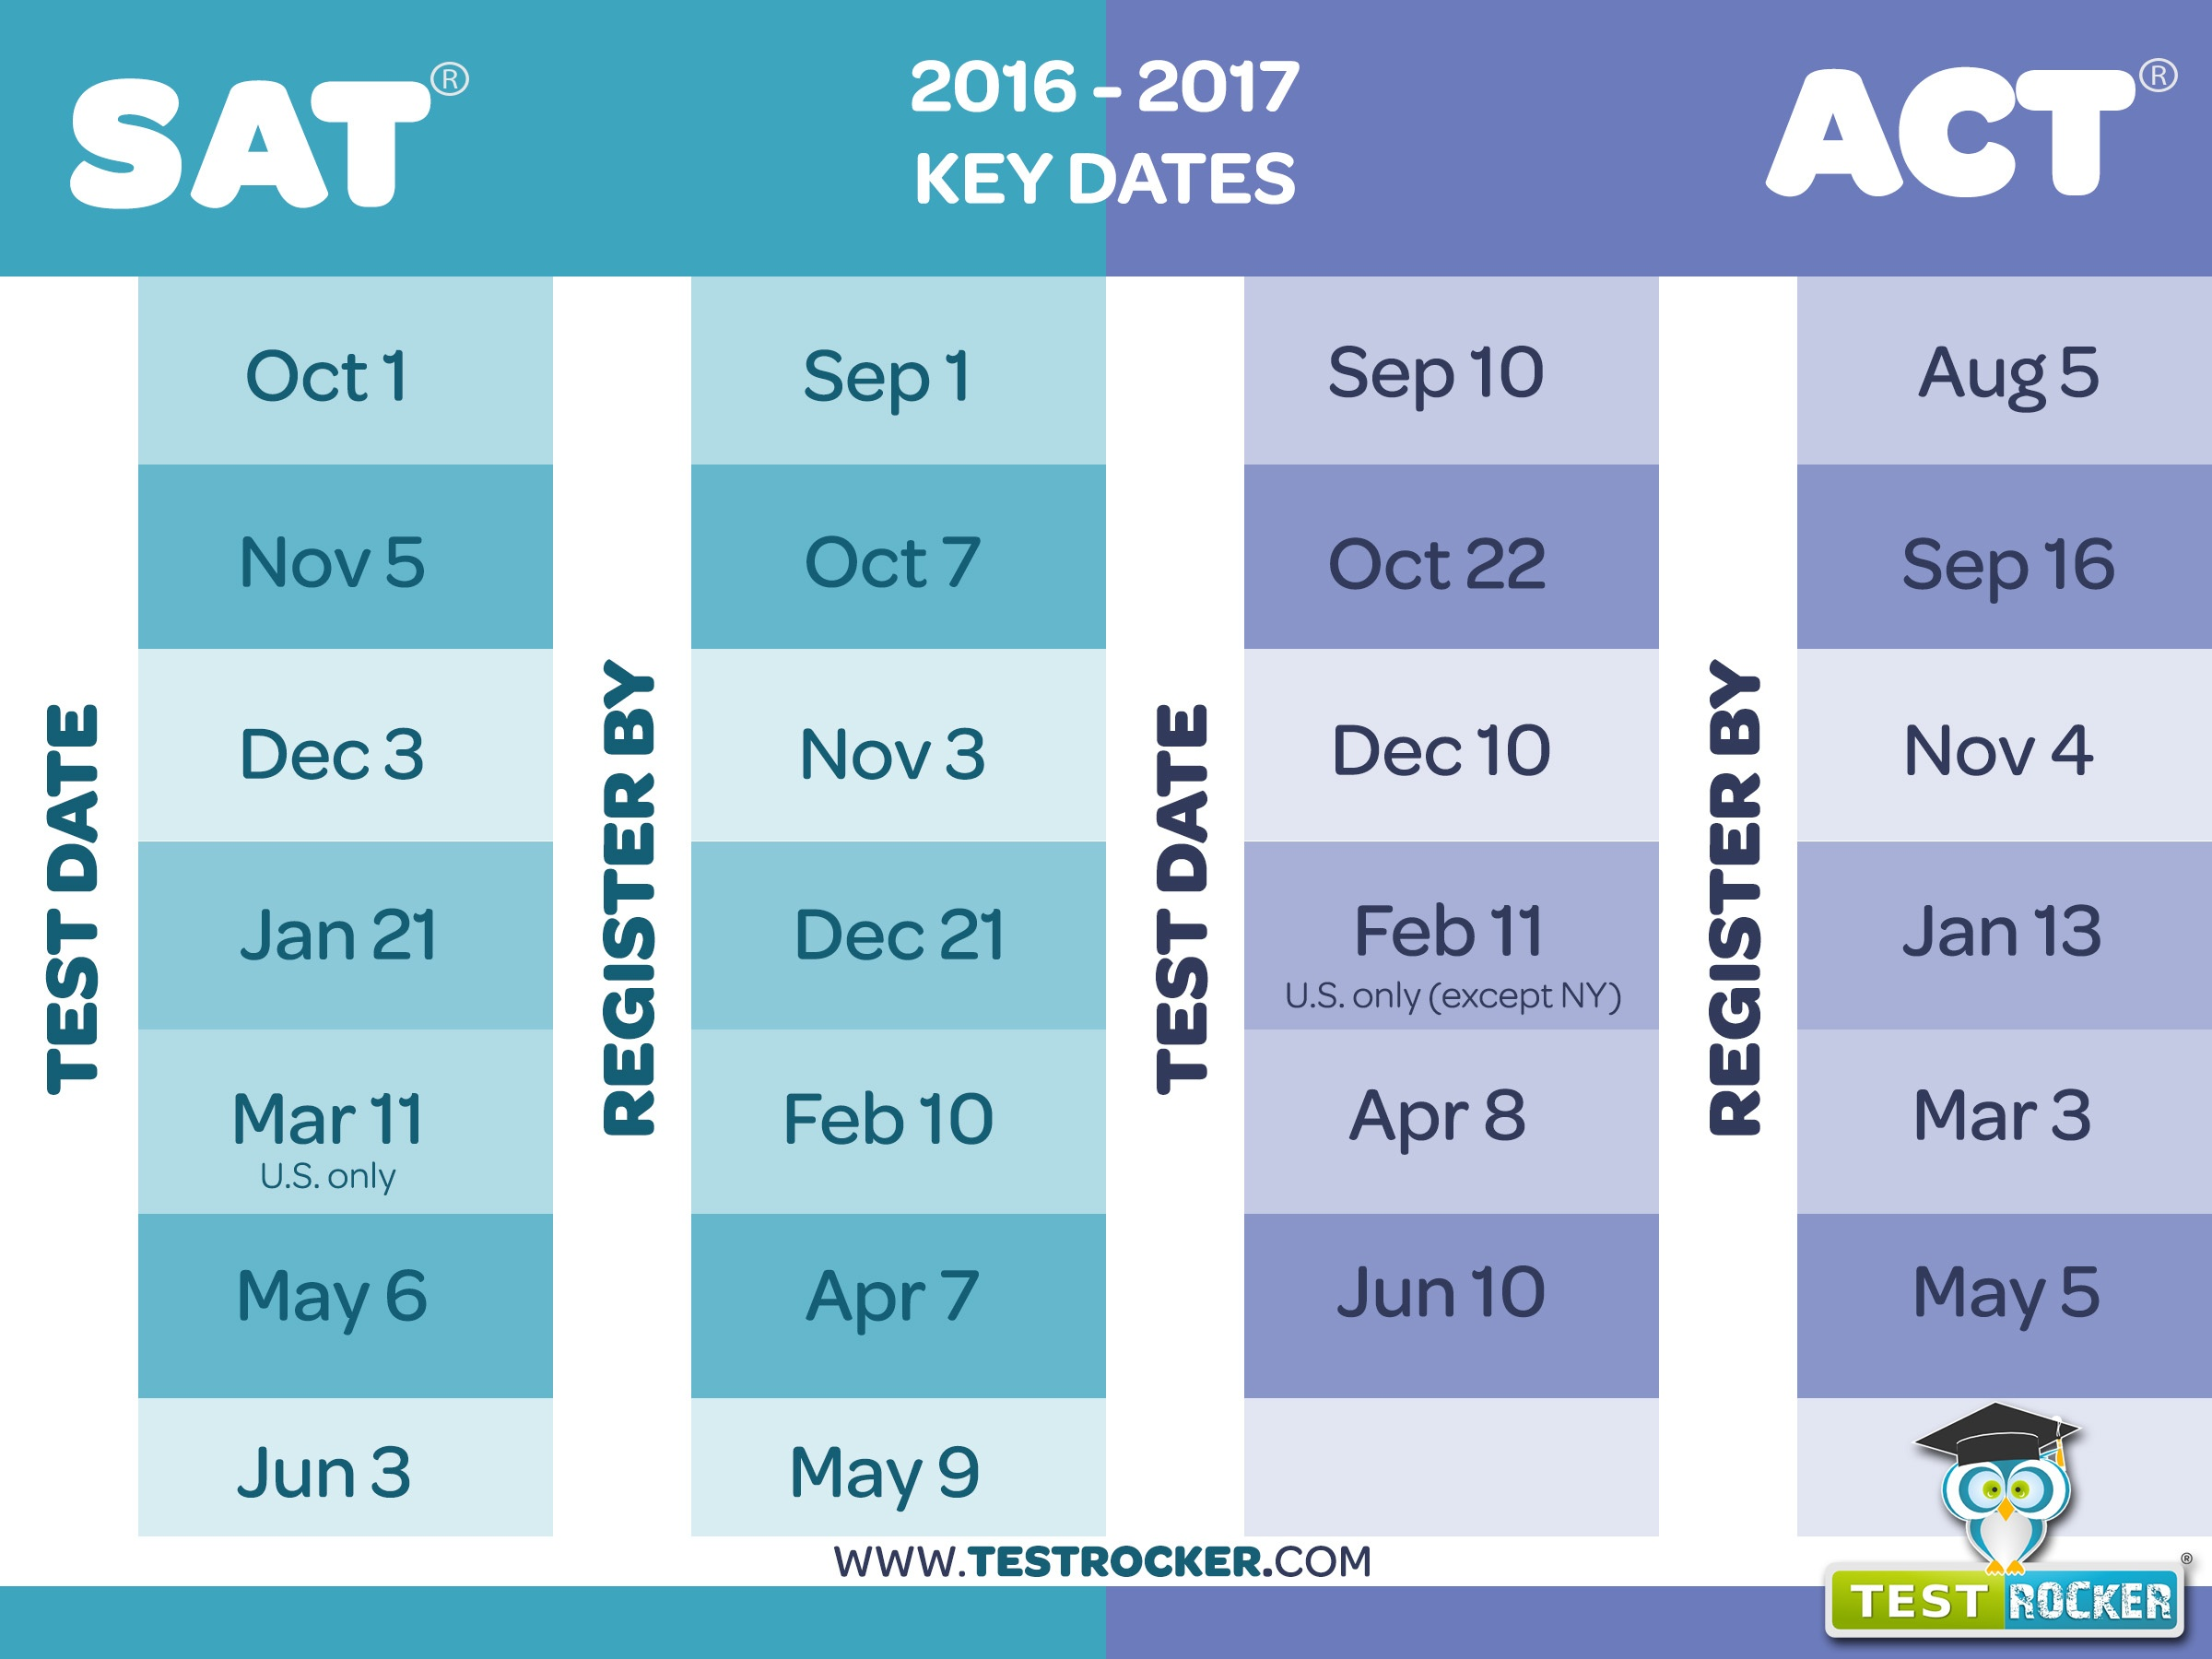 sat exam oct 2010 Sat® testthe sat exam tests the skills you're learning in school: sat tests are held october through june for detailed information on sat test dates and.